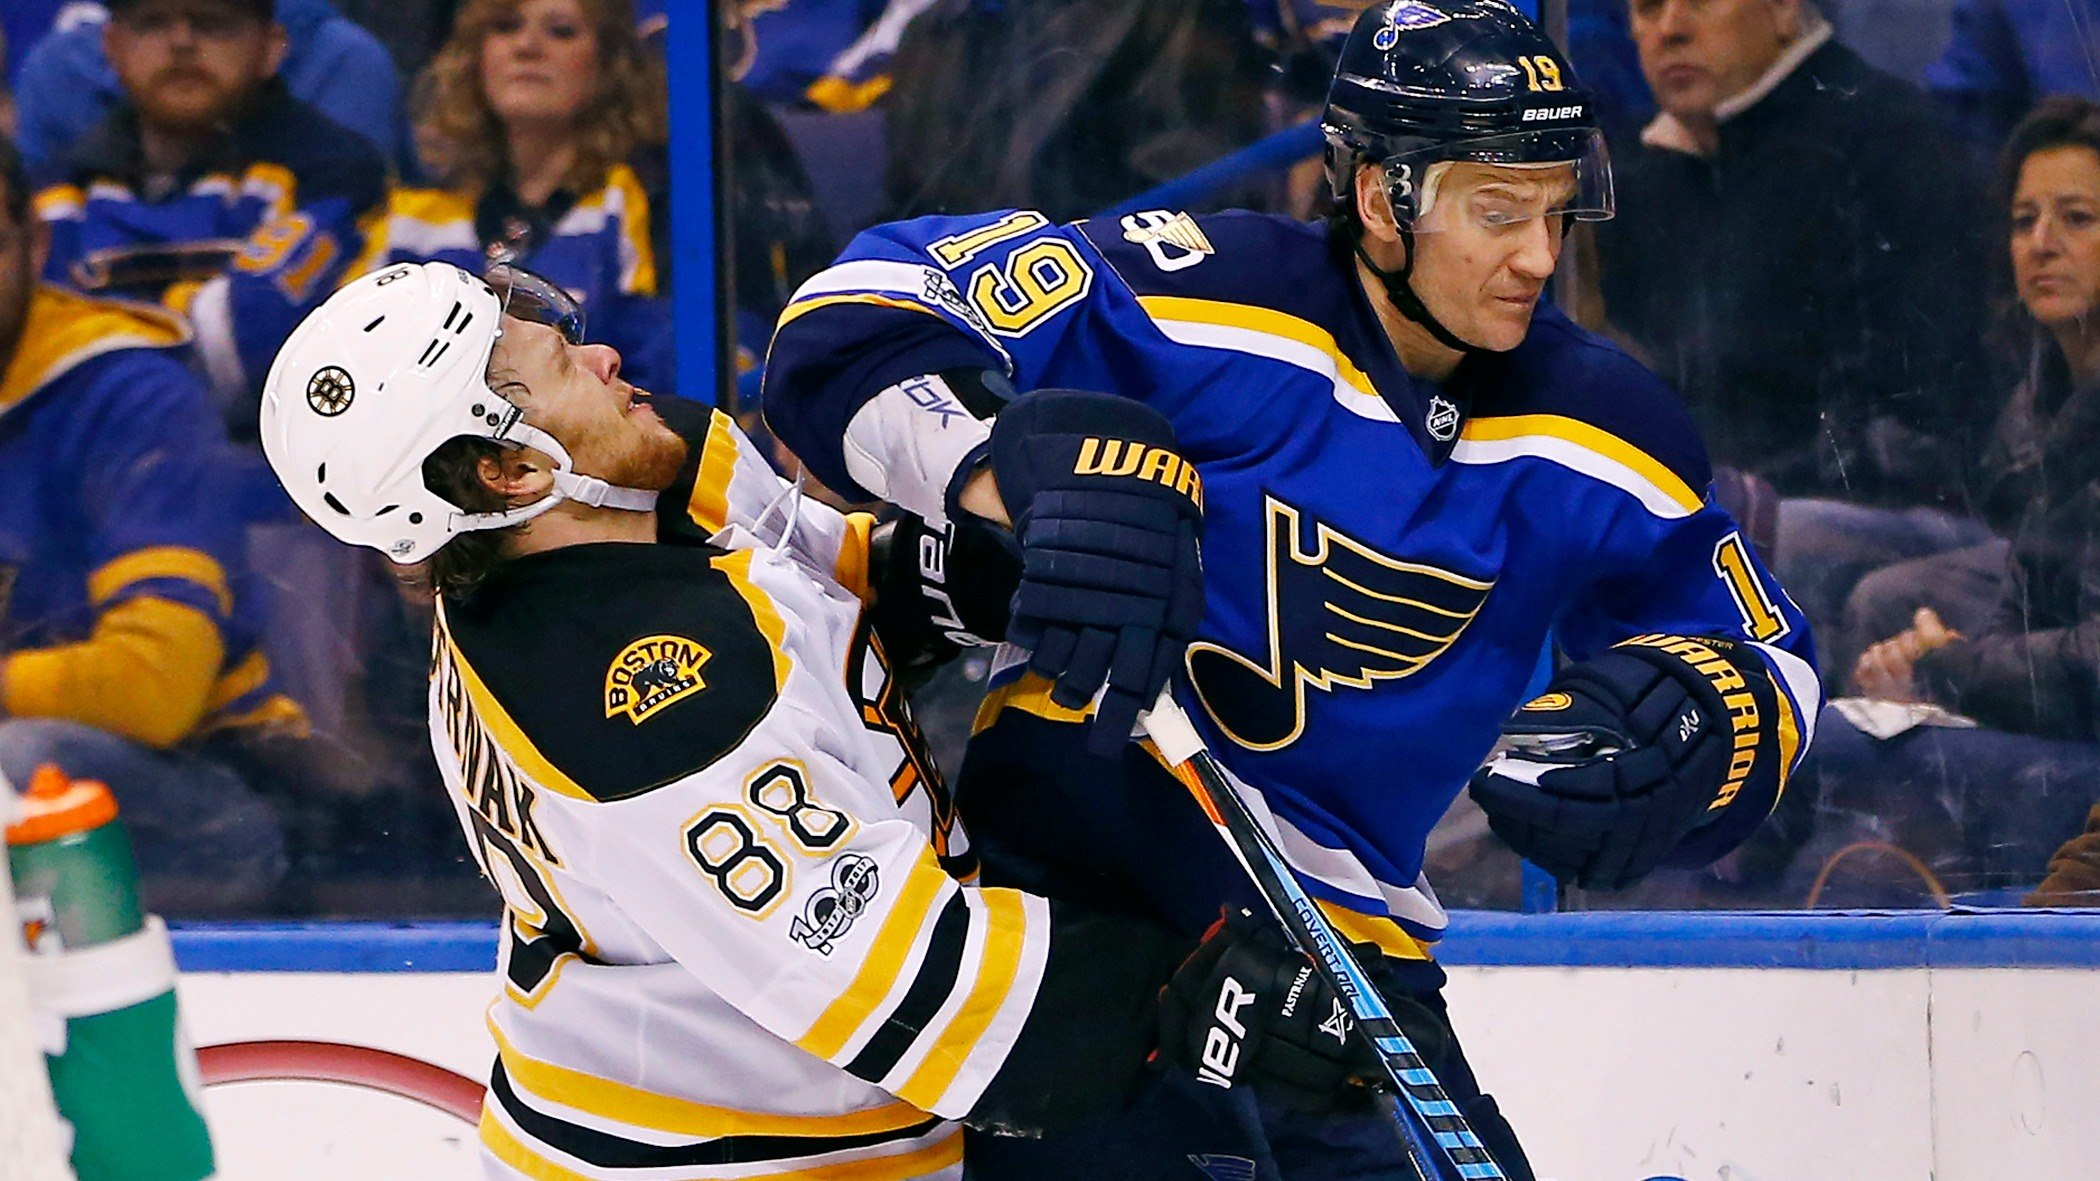 NHL No. 1 # Seed Playoff Playoffs Bruins Blues